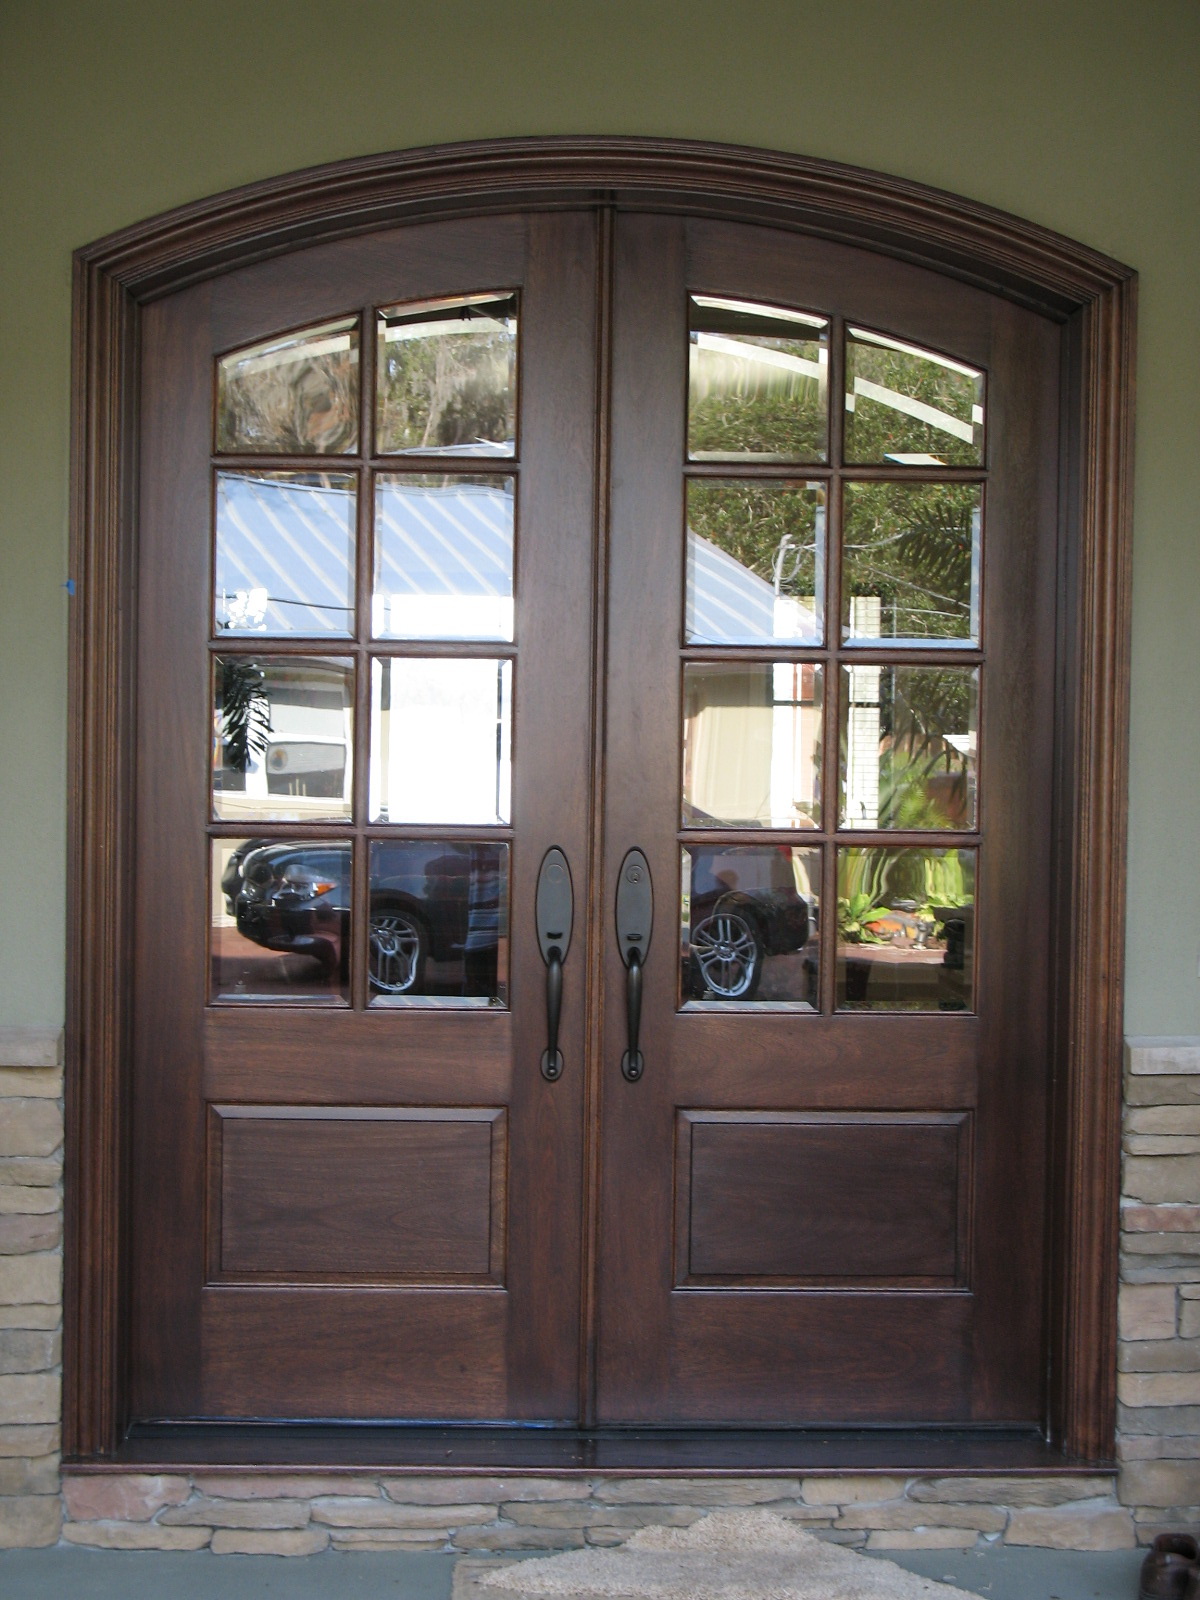 173 best front doors images on pinterest | the doors, windows and